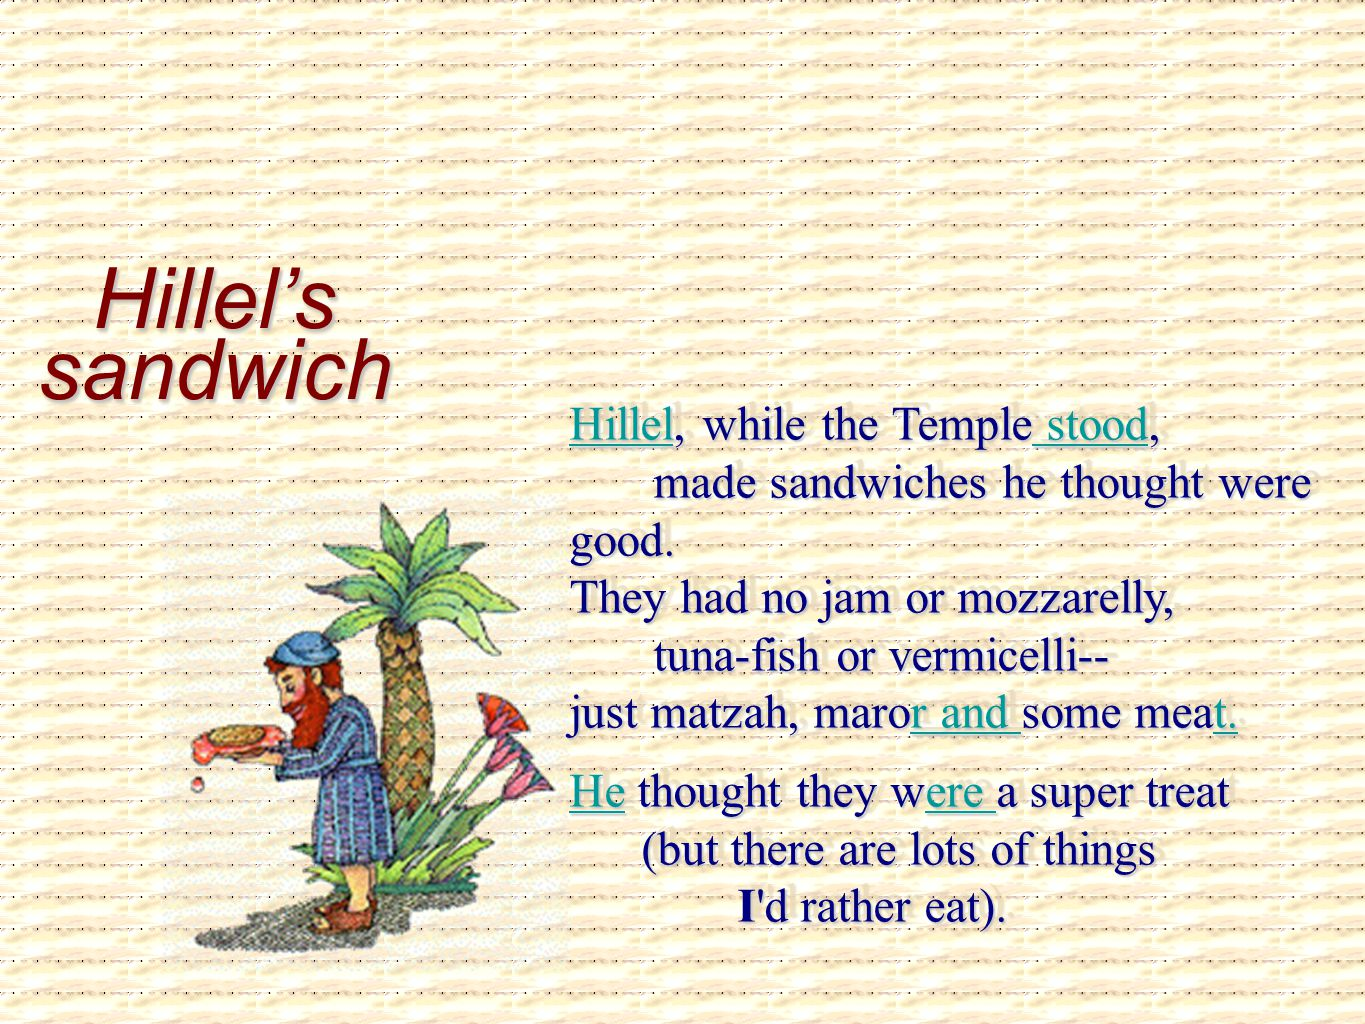 Hillel's sandwich HillelHillel, while the Temple stood, made sandwiches he thought were good. They had no jam or mozzarelly, tuna-fish or vermicelli--